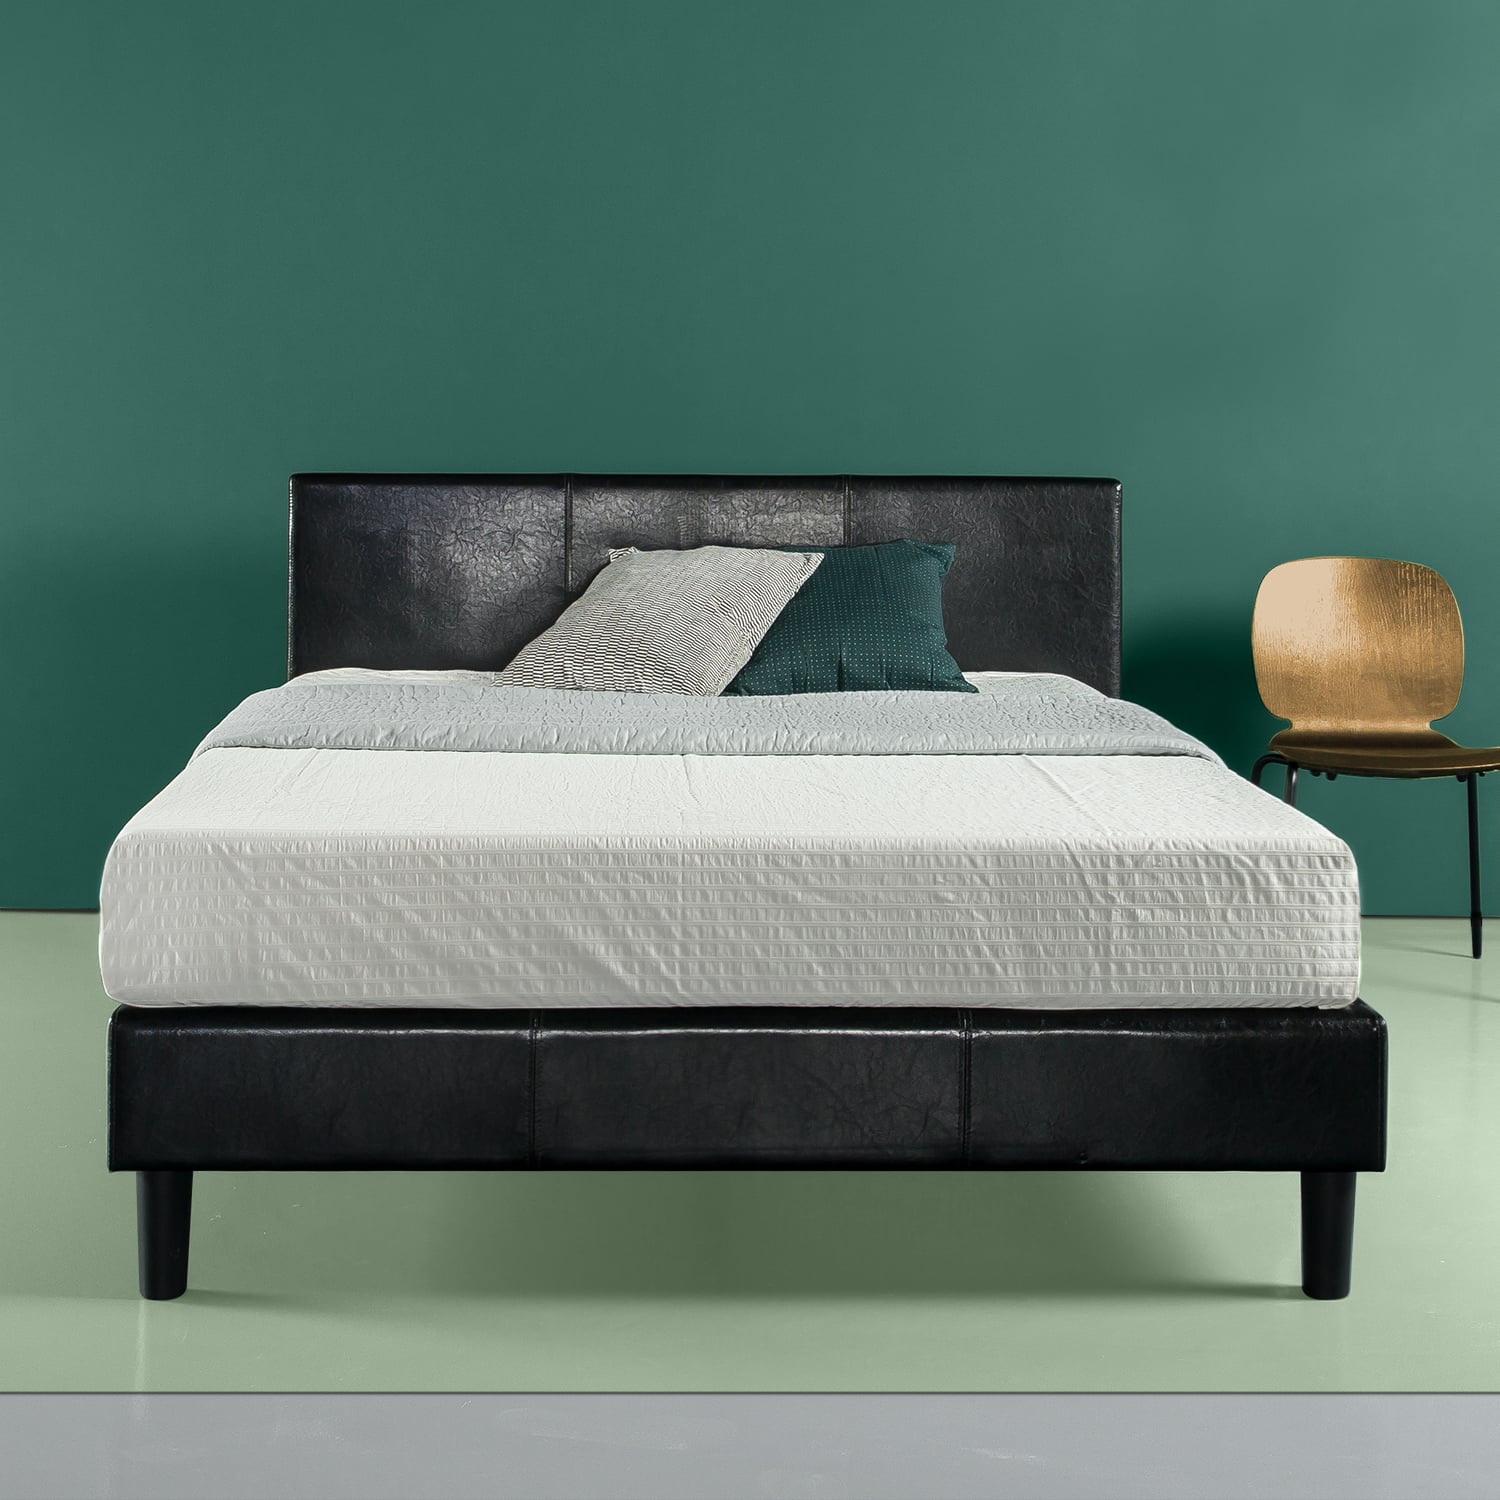 Zinus Faux Leather Platform Bed with Wood Slat Support, Queen for $149 @ Walmart